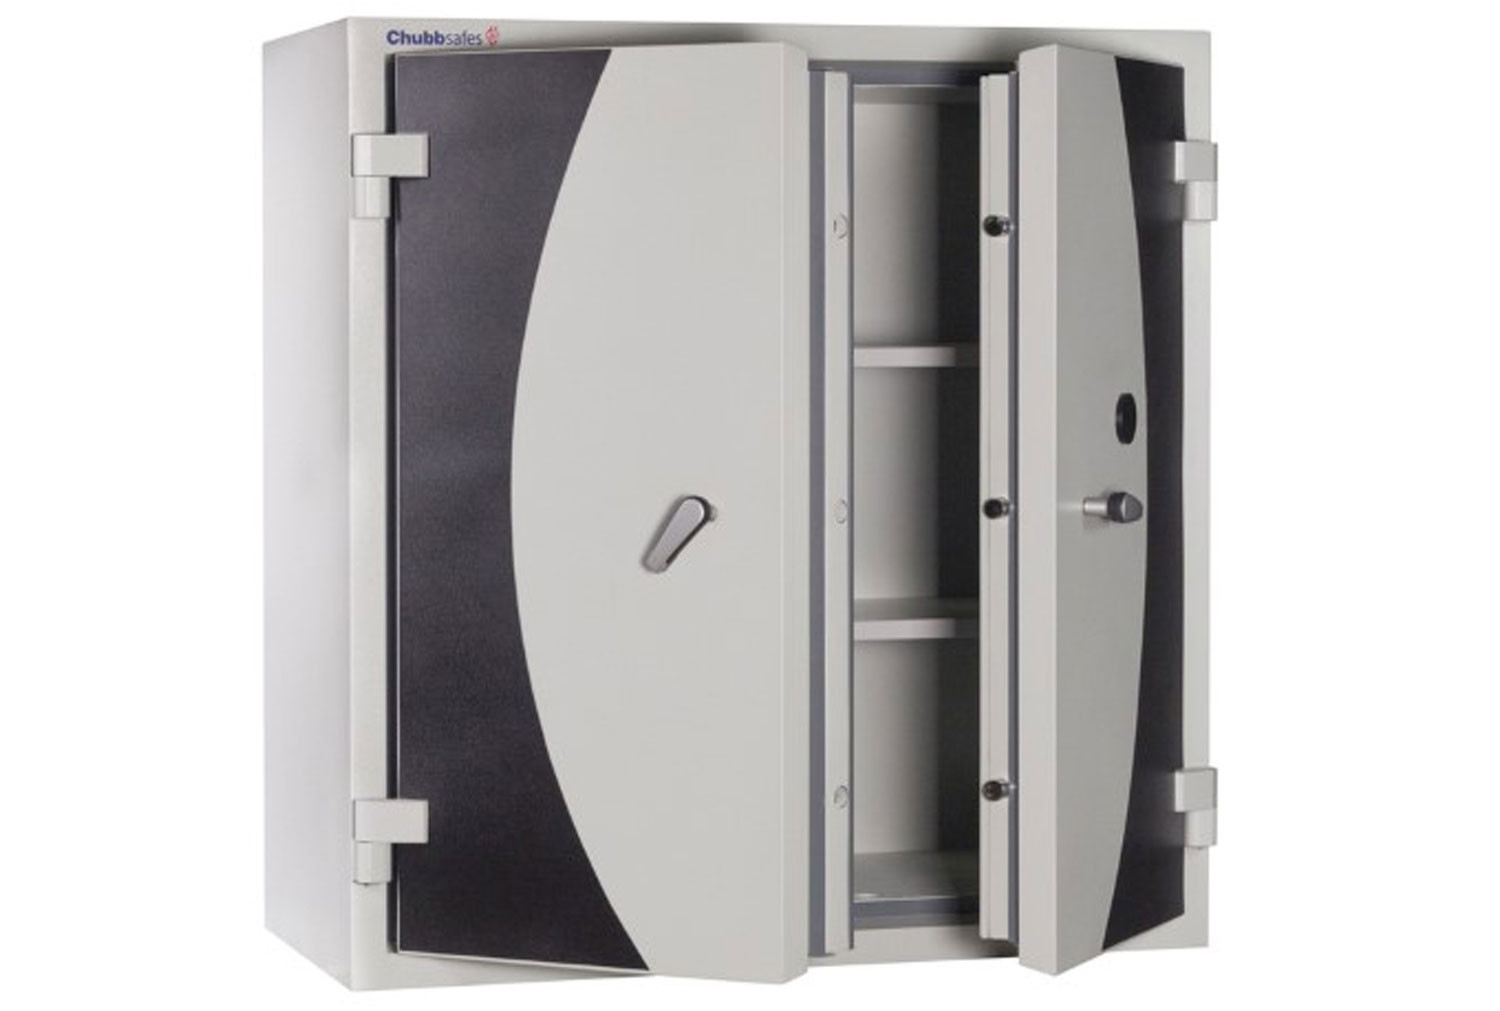 Chubbsafes DPC 400 Fire Resistant Cabinet With Key Lock (401ltrs)